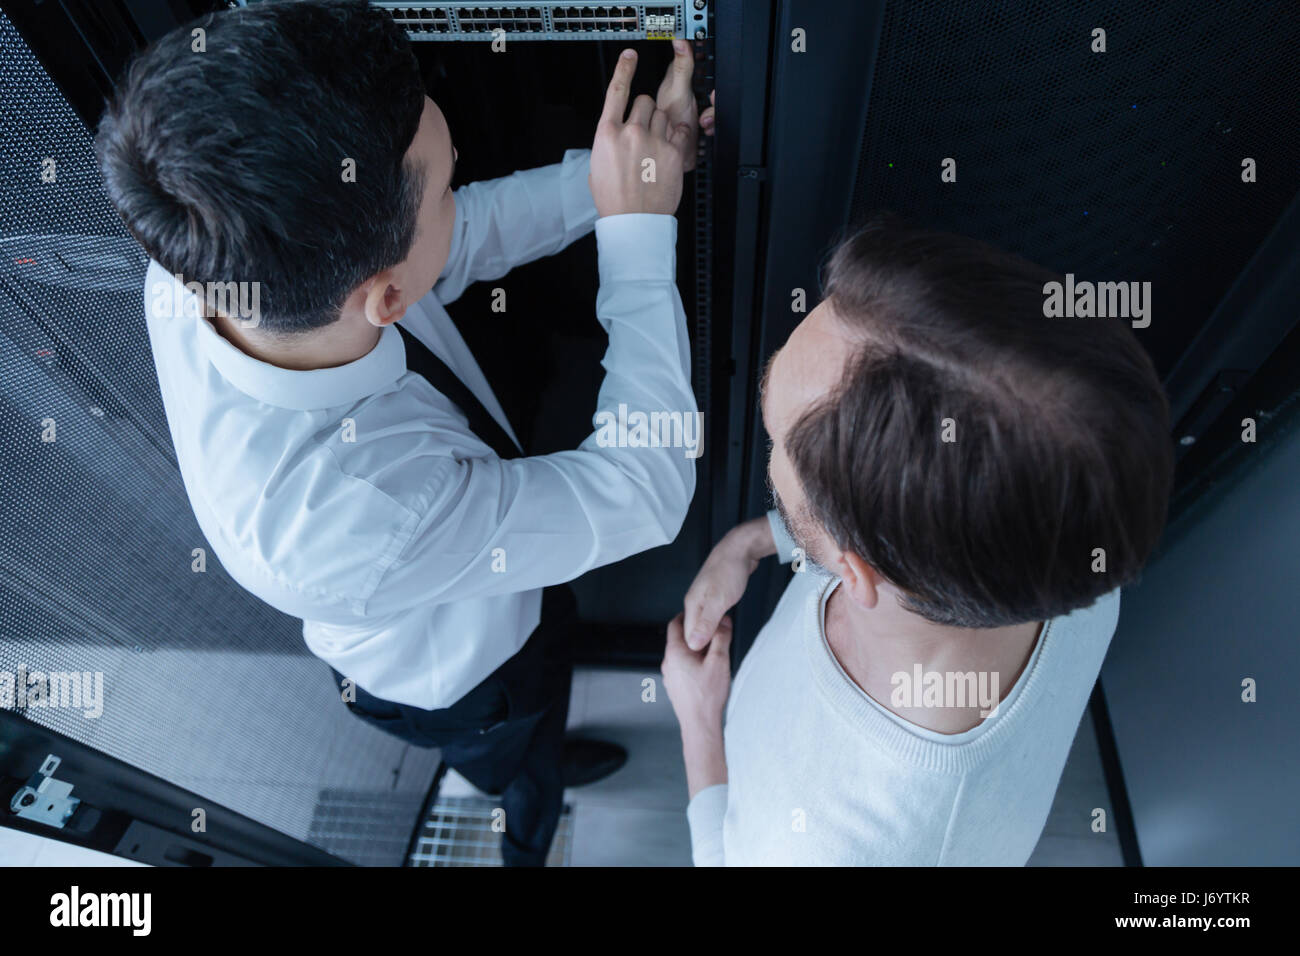 Top view of male technicians deciding what to do - Stock Image